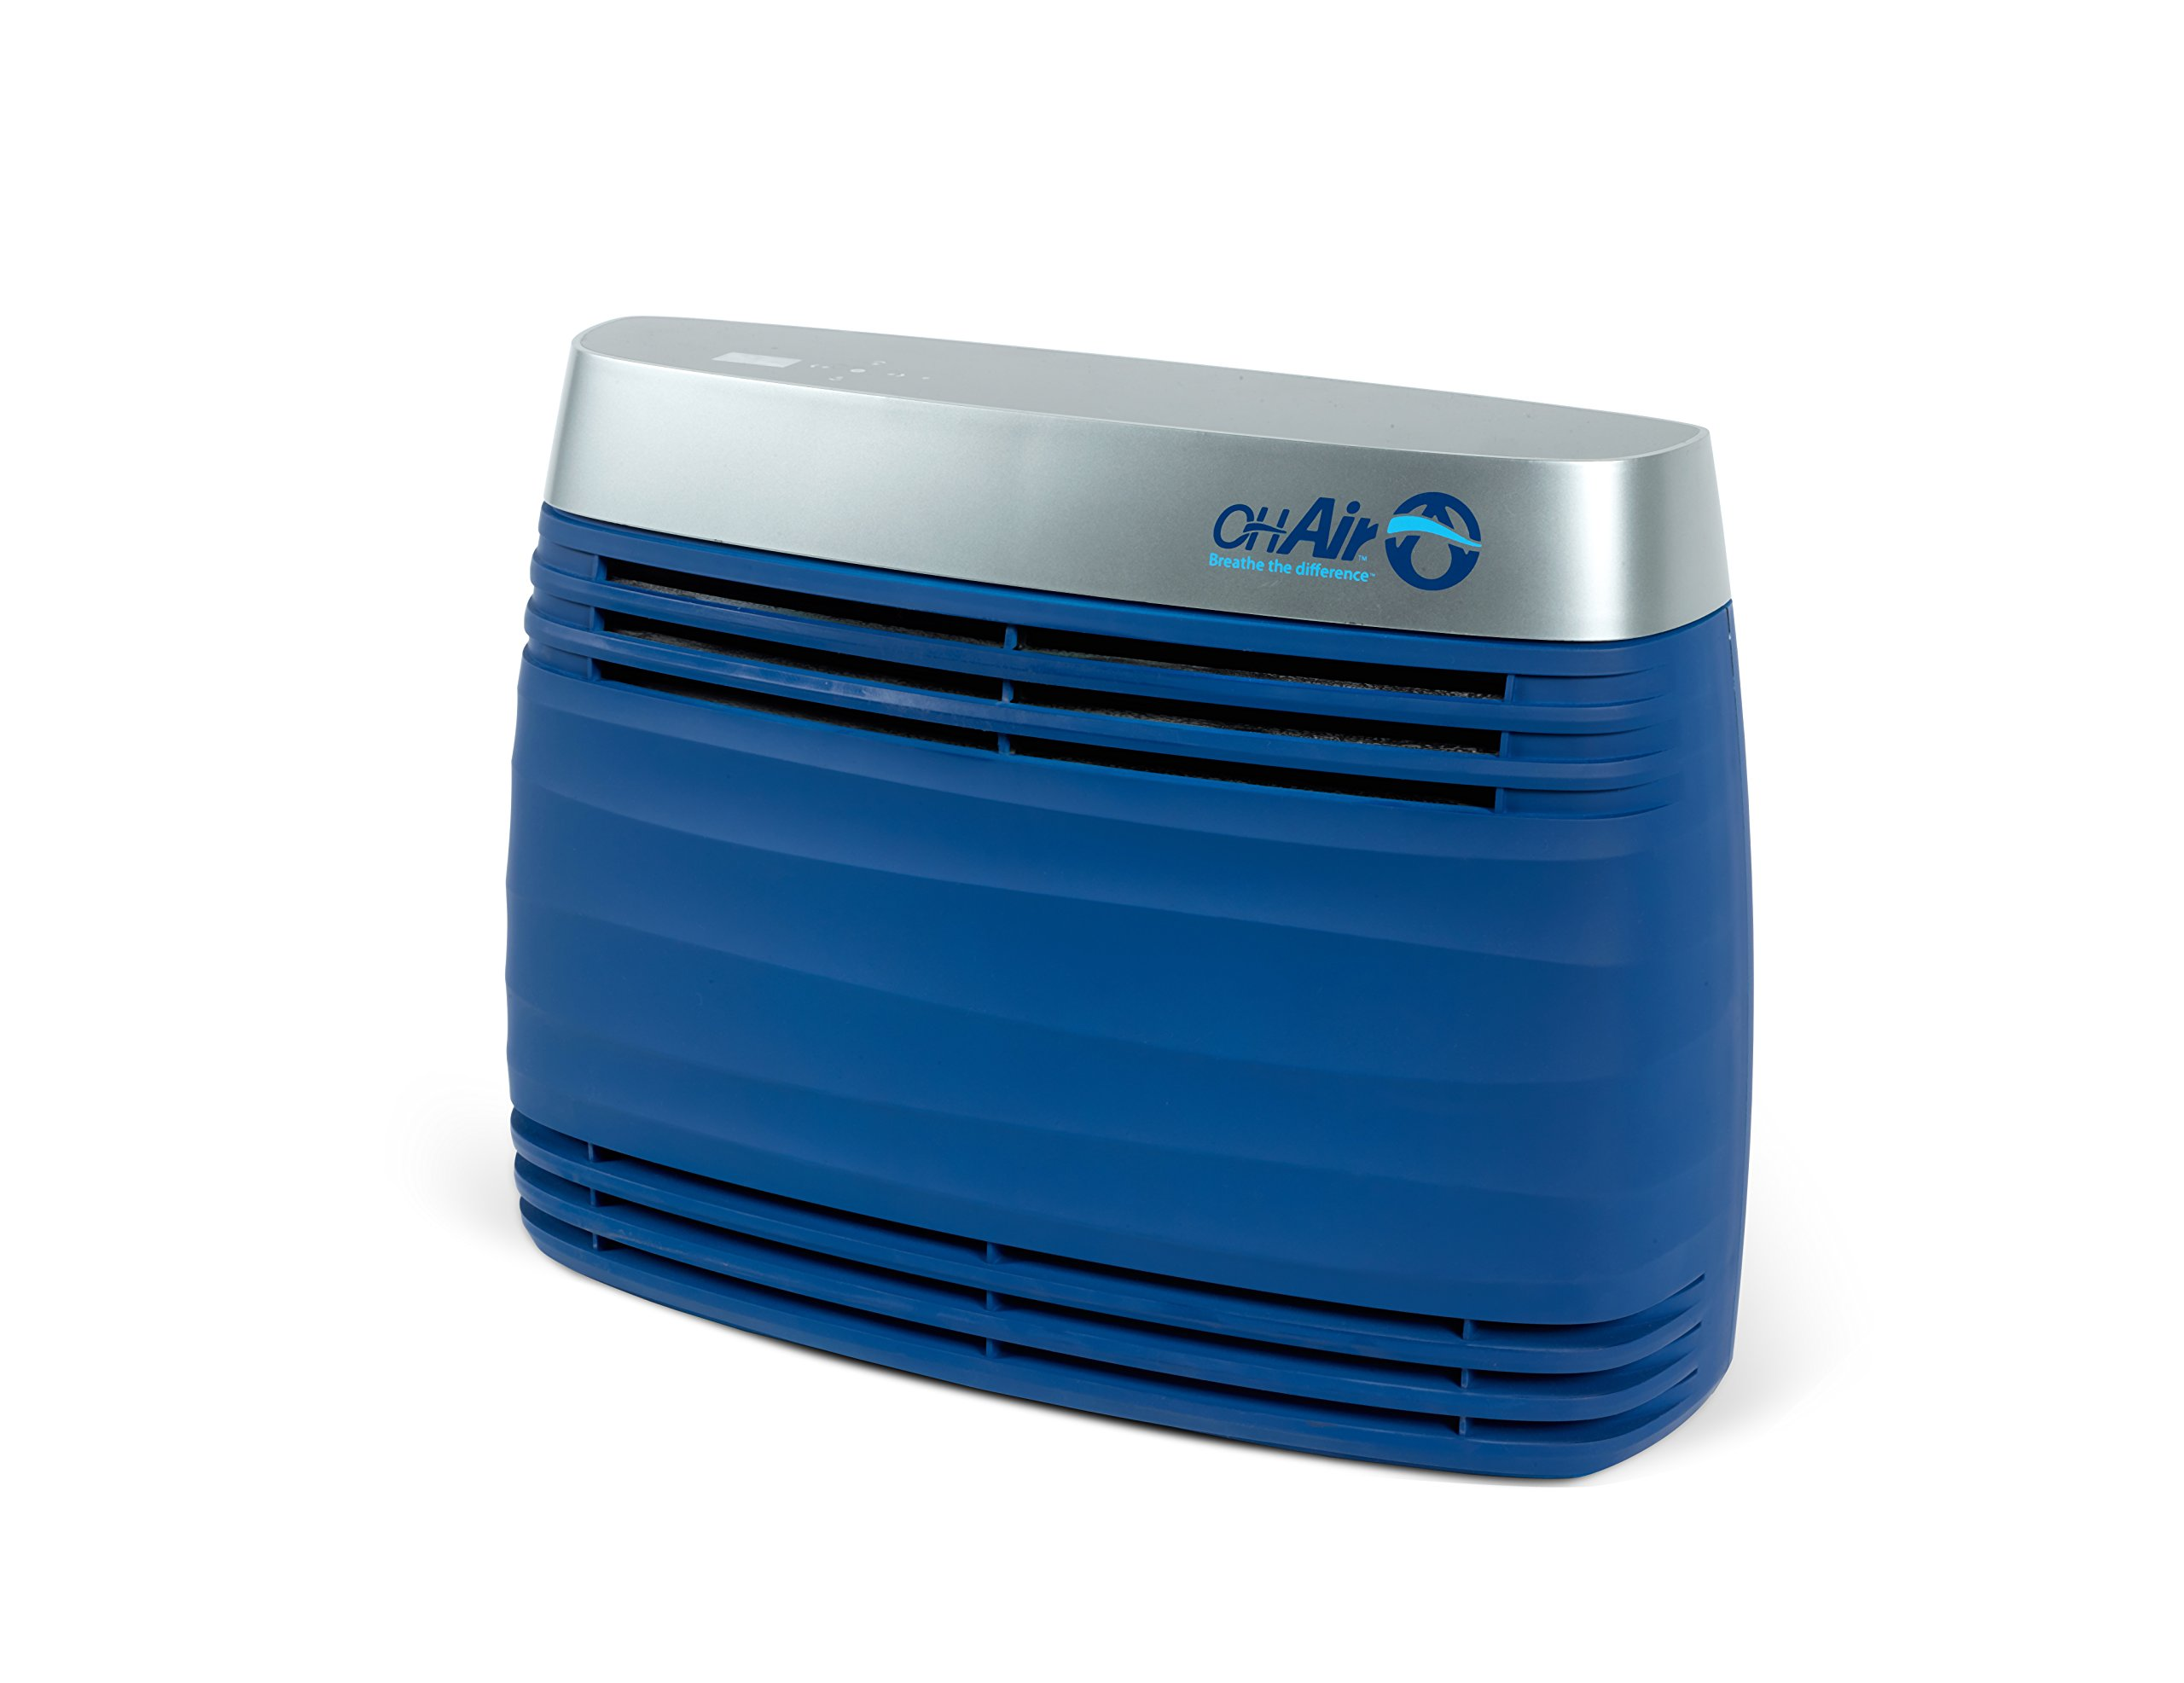 OHAir Portable Air Purifier and Surface Sanitizer For Destroying Allergens, Germs, Mold, Bacteria, Virus And Removing Odors From Cigarette Smoke, Pets And Airborne Chemicals– Blue